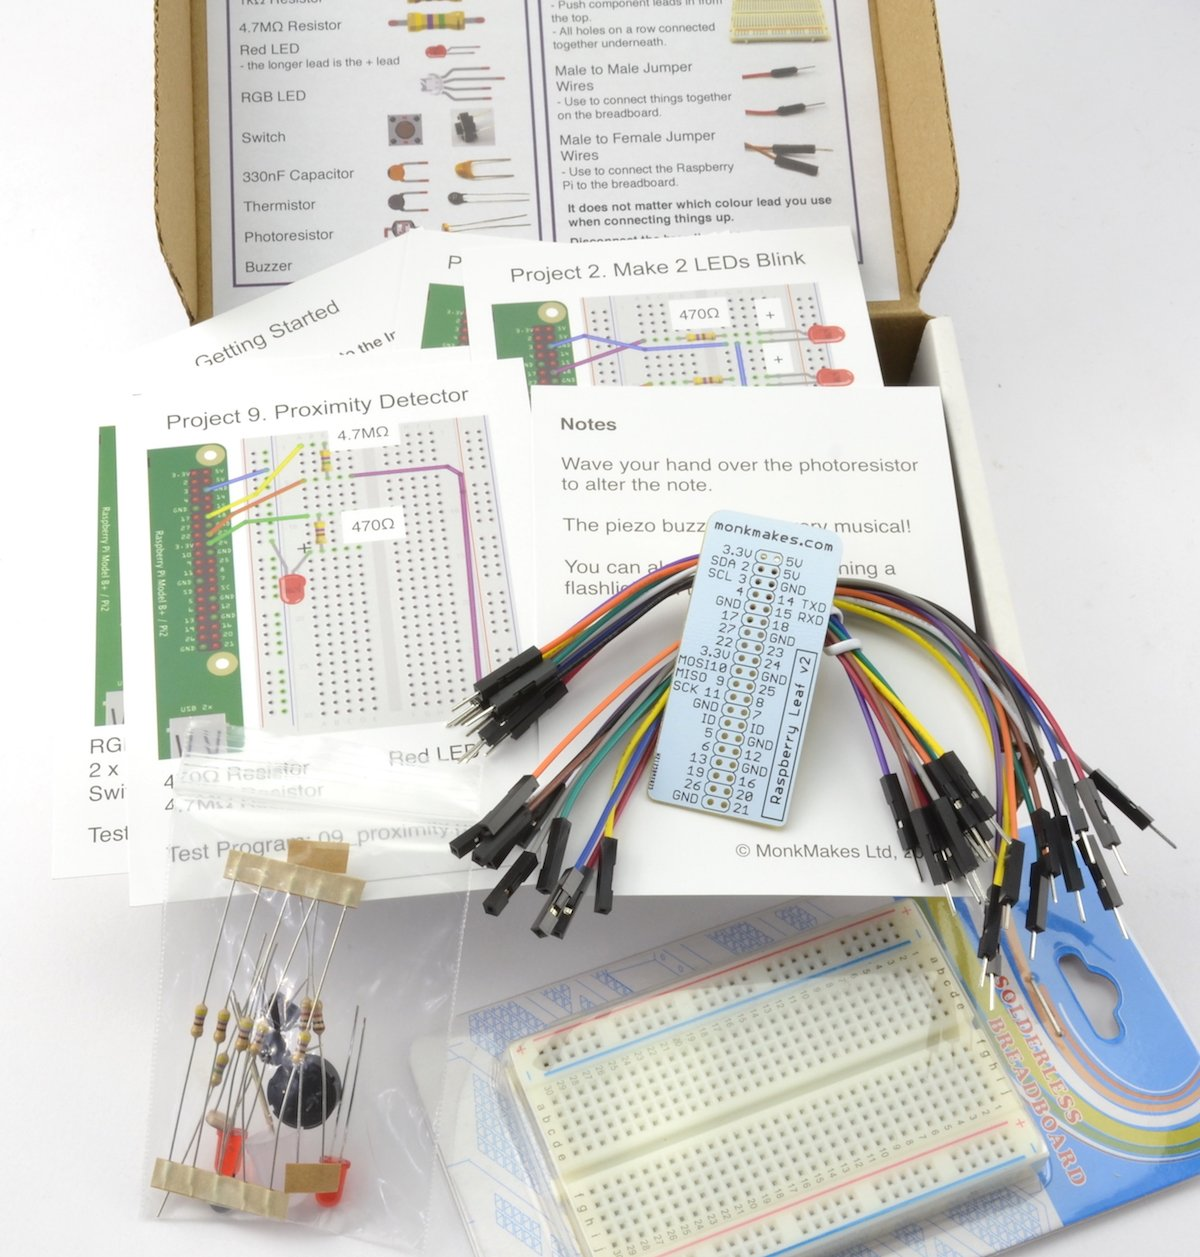 Electronic Starter Kit For Raspberry Pi Computers More Led Circuits Driver Hobby Category List Email Accessories